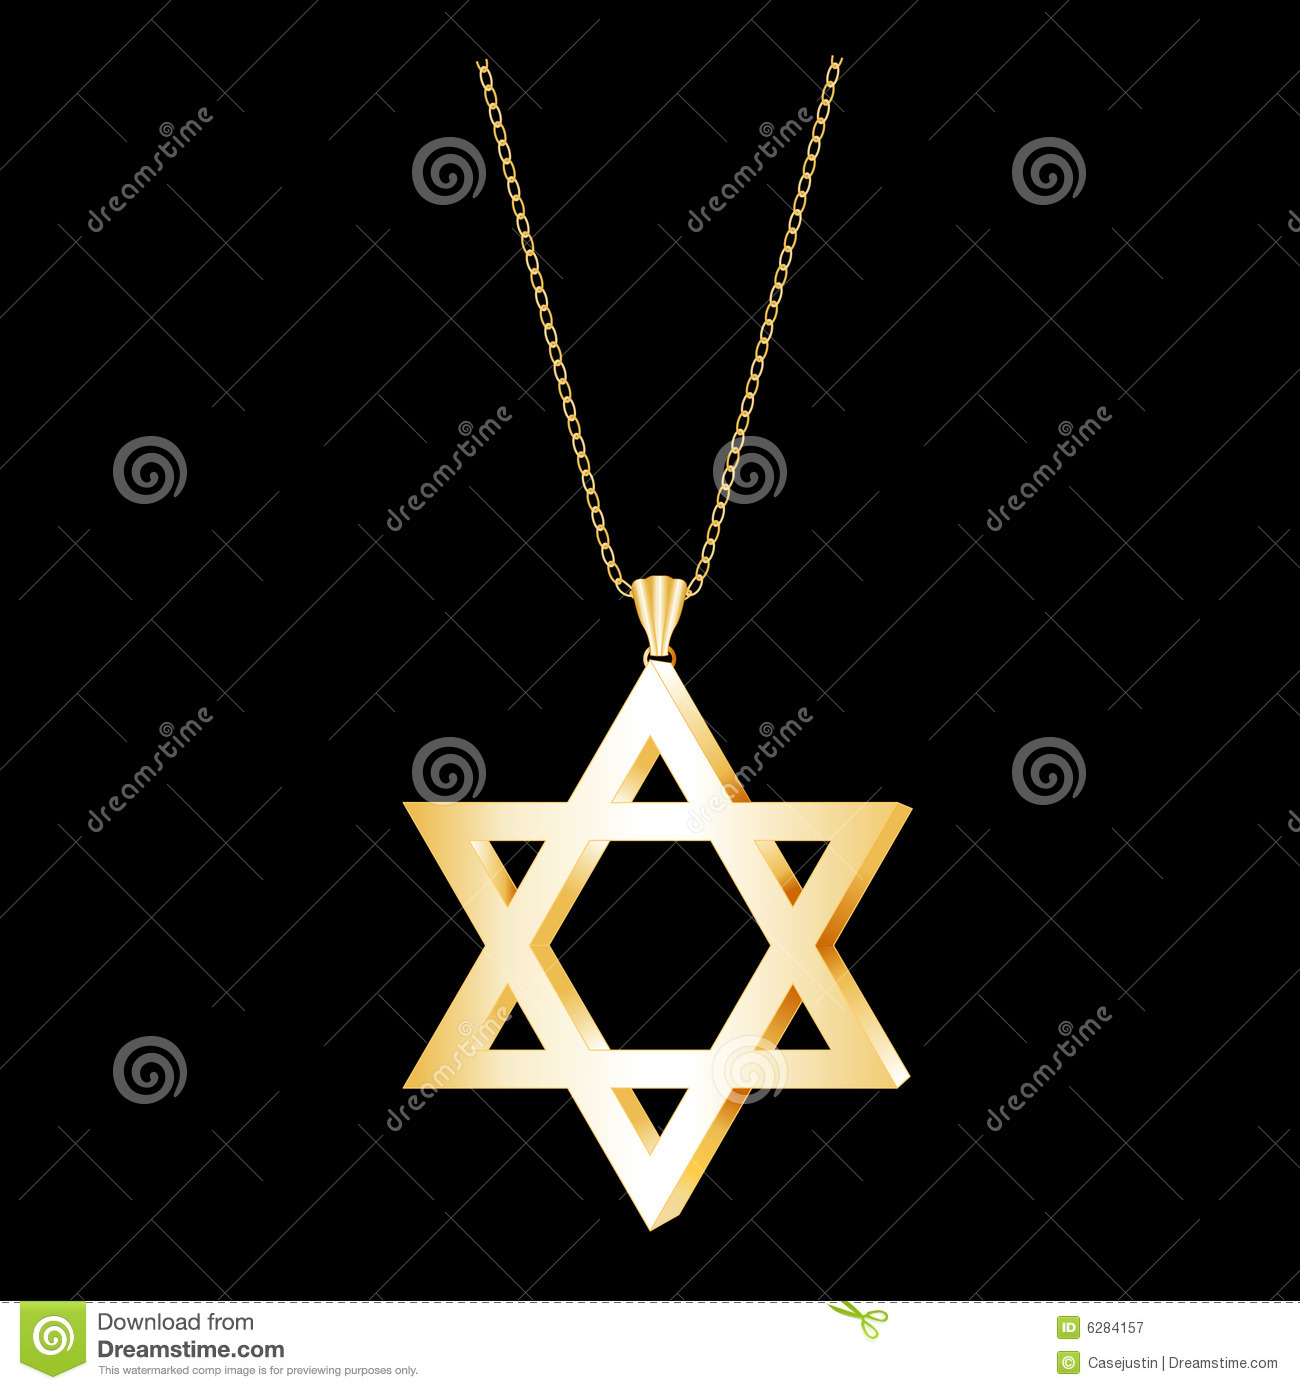 Gold star of david pendant stock vector illustration of keepsake gold star of david pendant aloadofball Images